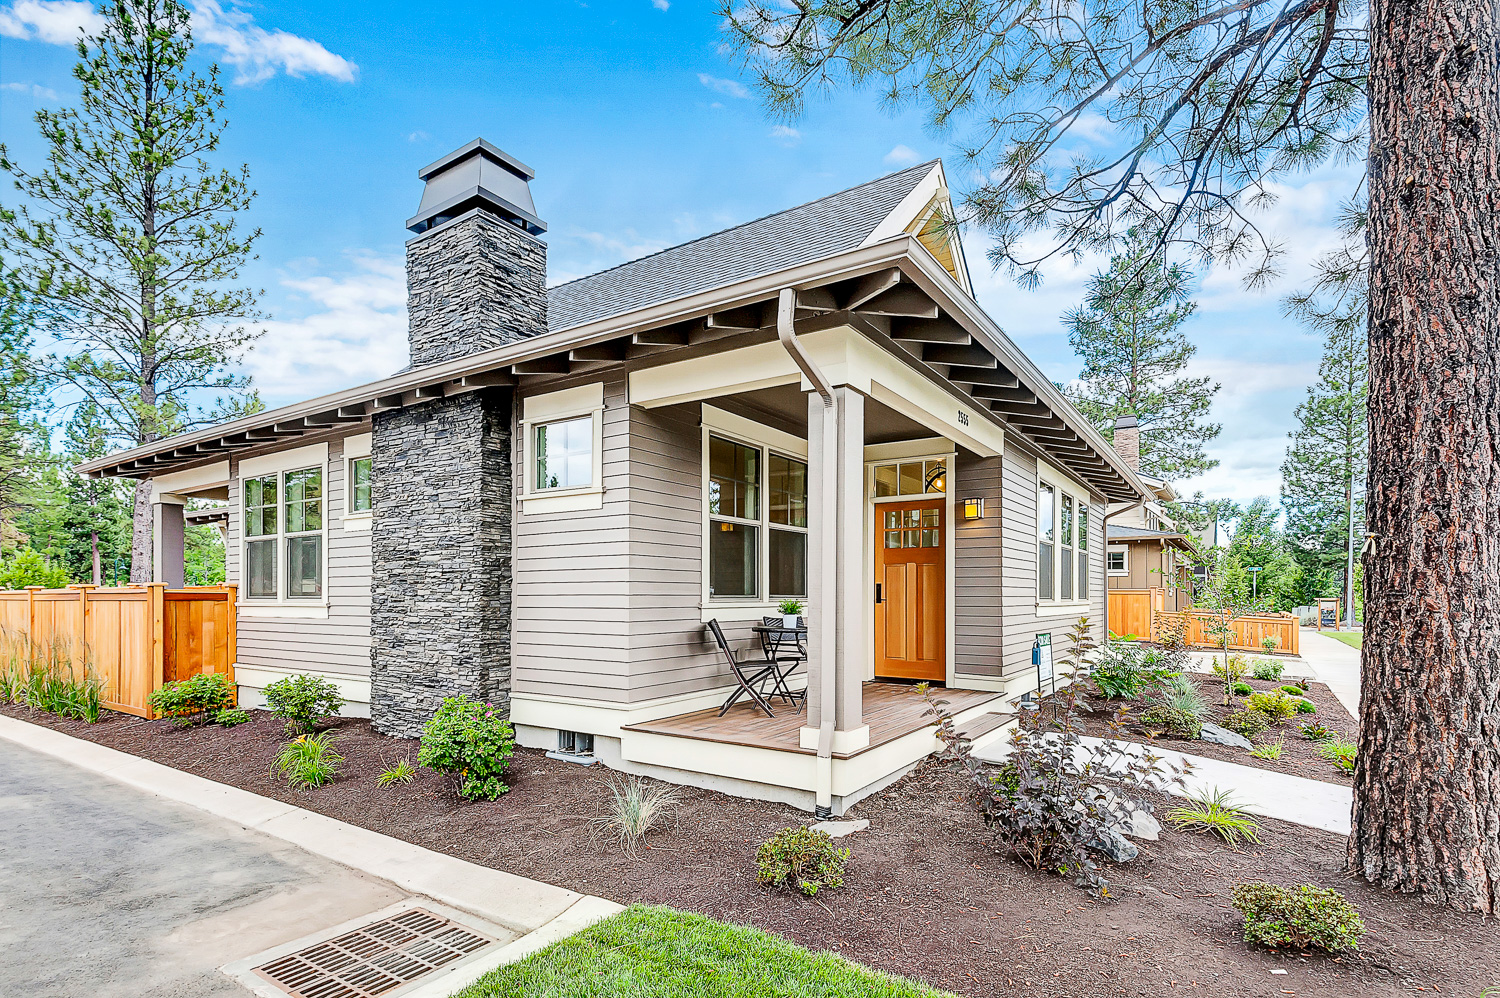 Bend Oregon Real Estate Facts That Just Aren't True